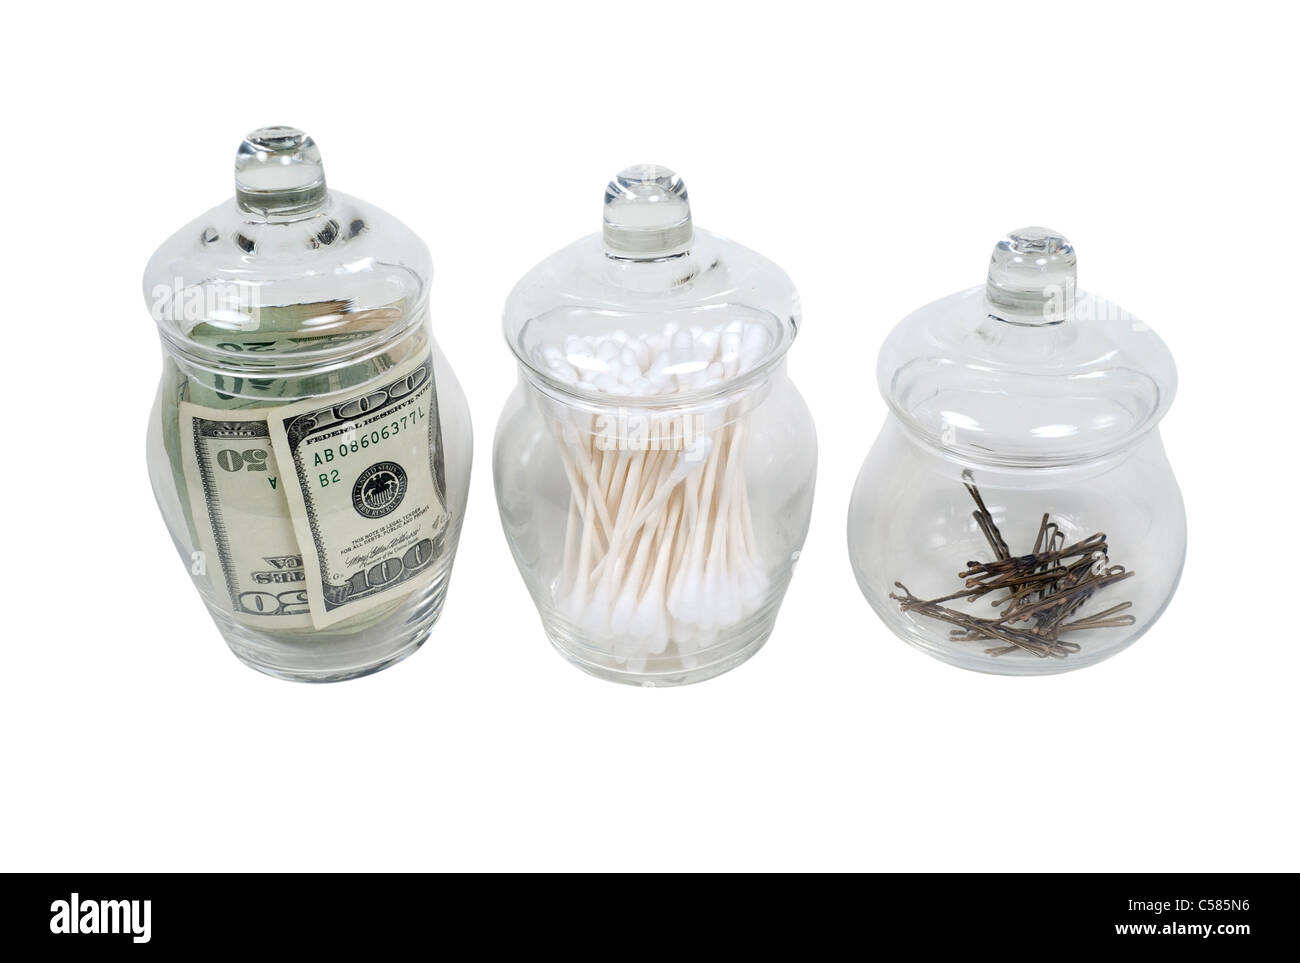 Old glass apothecary jars with fitted lids filled with money, cleaners and hair clips - path included - Stock Image